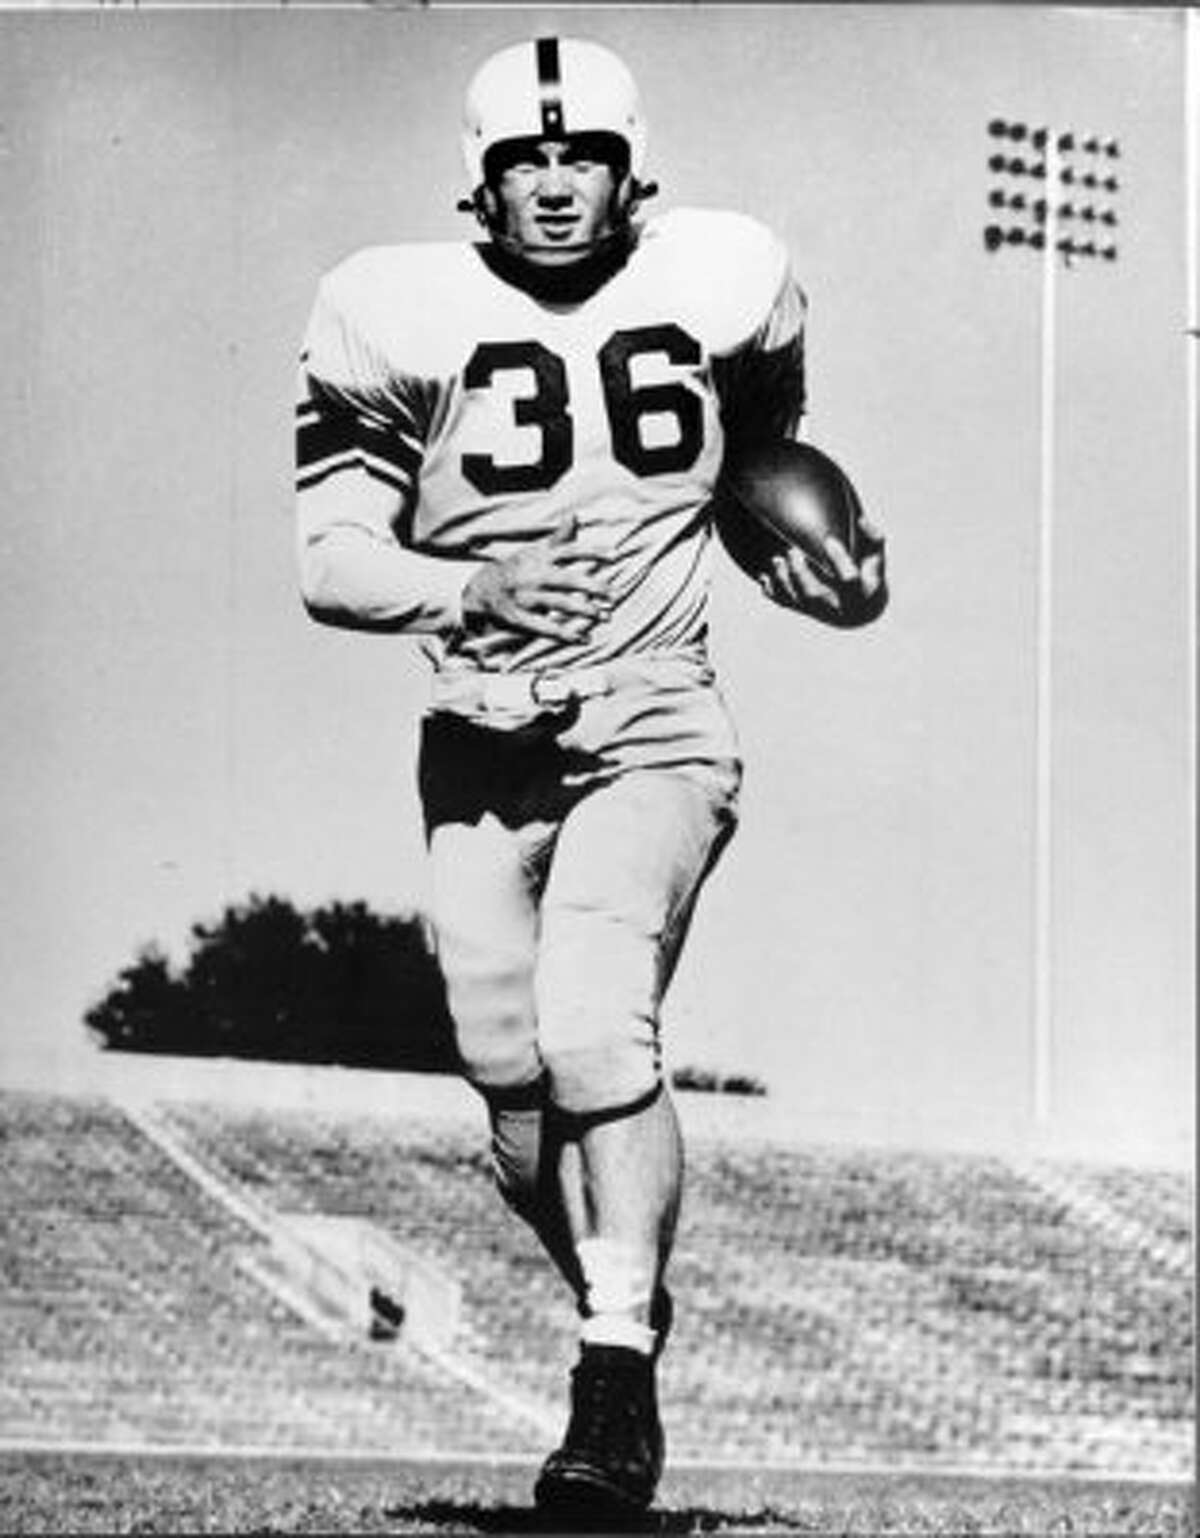 In 1950, A&M All-American running back Bob Smith ran for 1,302 yards and 14 touchdowns with the basic uniform of his day, without the facemask. (Express-News file photo)